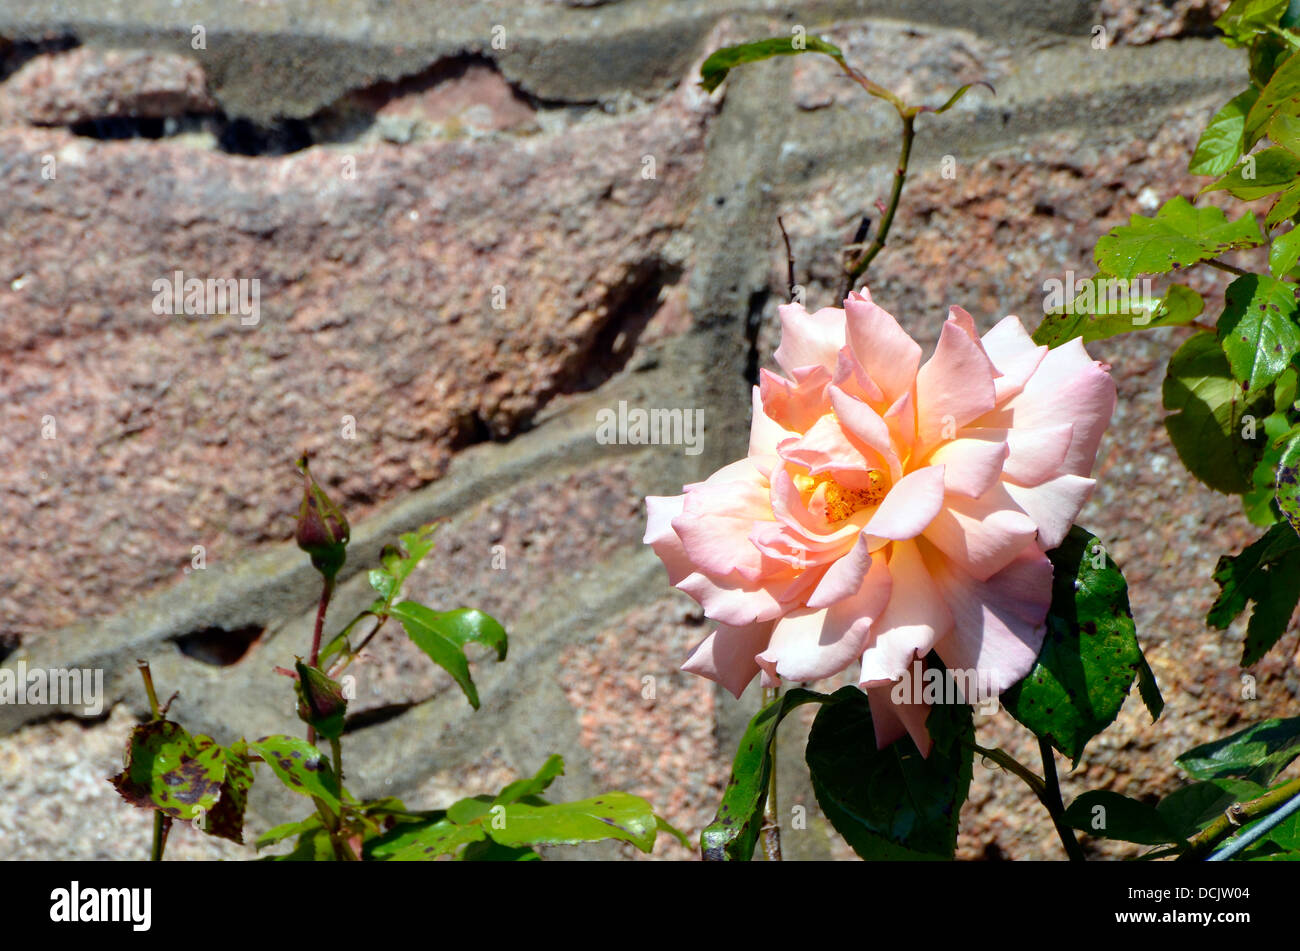 Pink rose against an old red sandstone wall in the south Cumbria area of the Lake District. - Stock Image